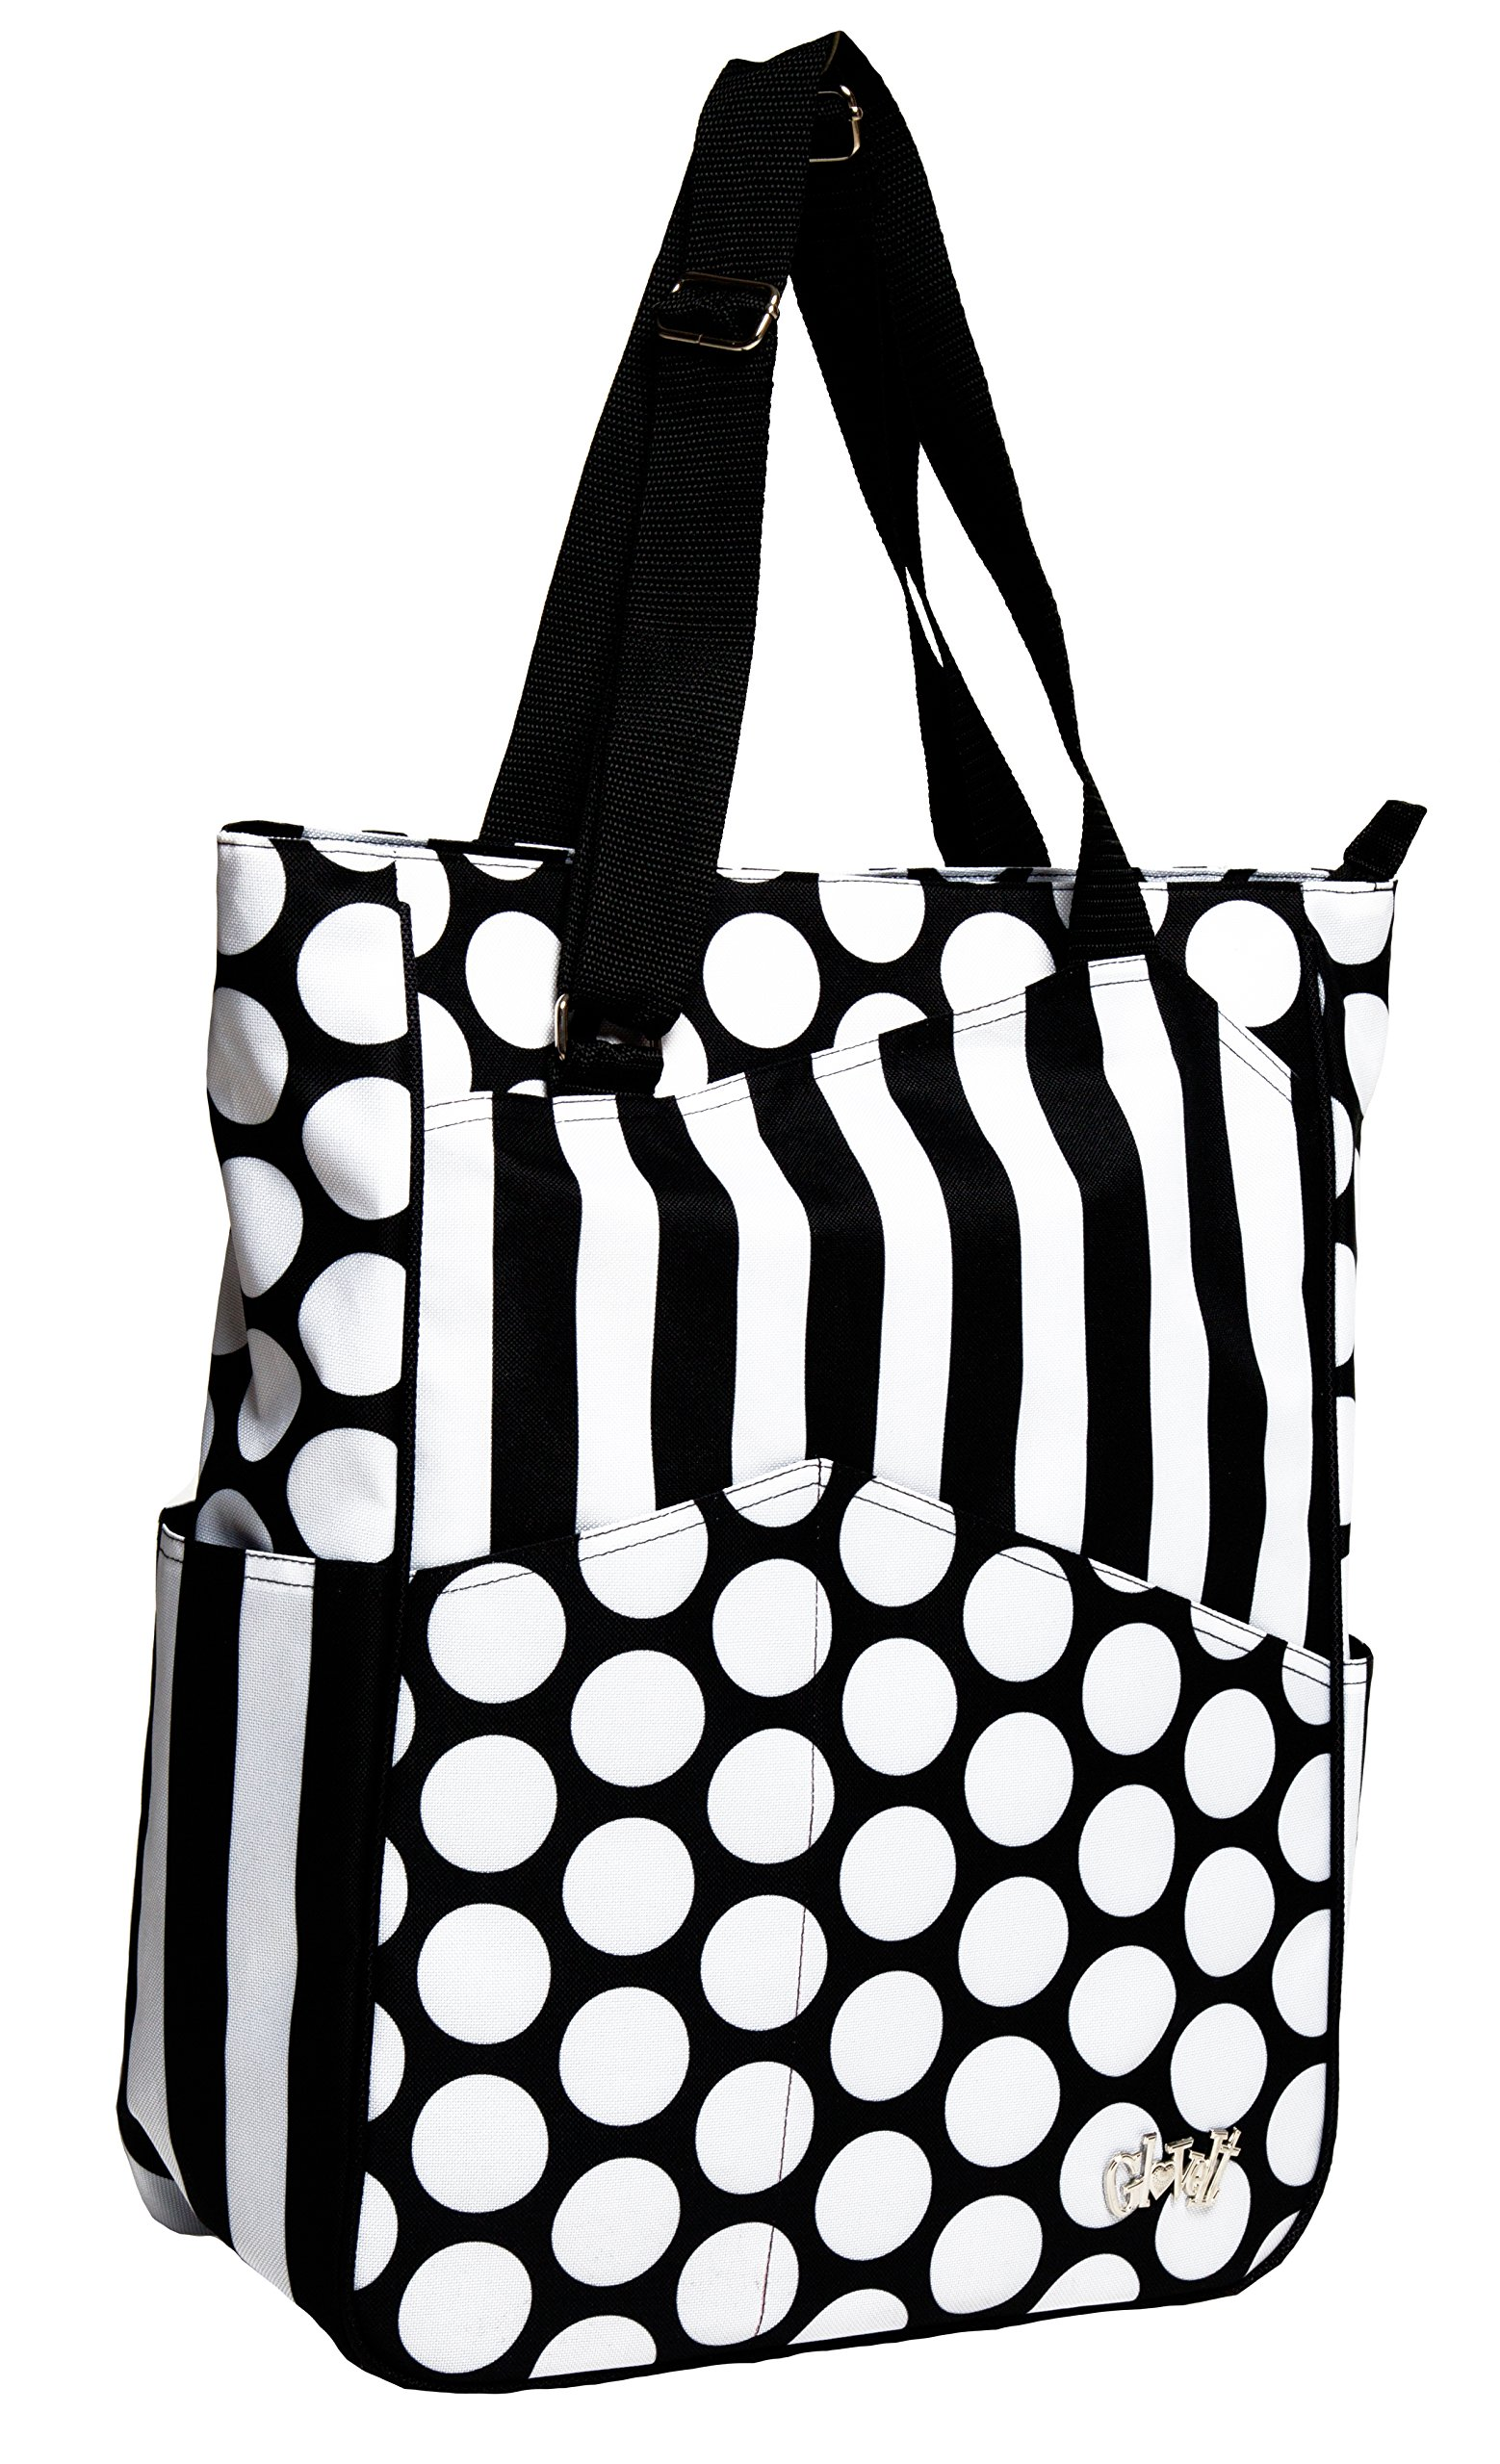 Tennis Tote Bag - Glove It Big Fashion Tote Bags for Women - Womens Large  Tennis 927ec45fa4